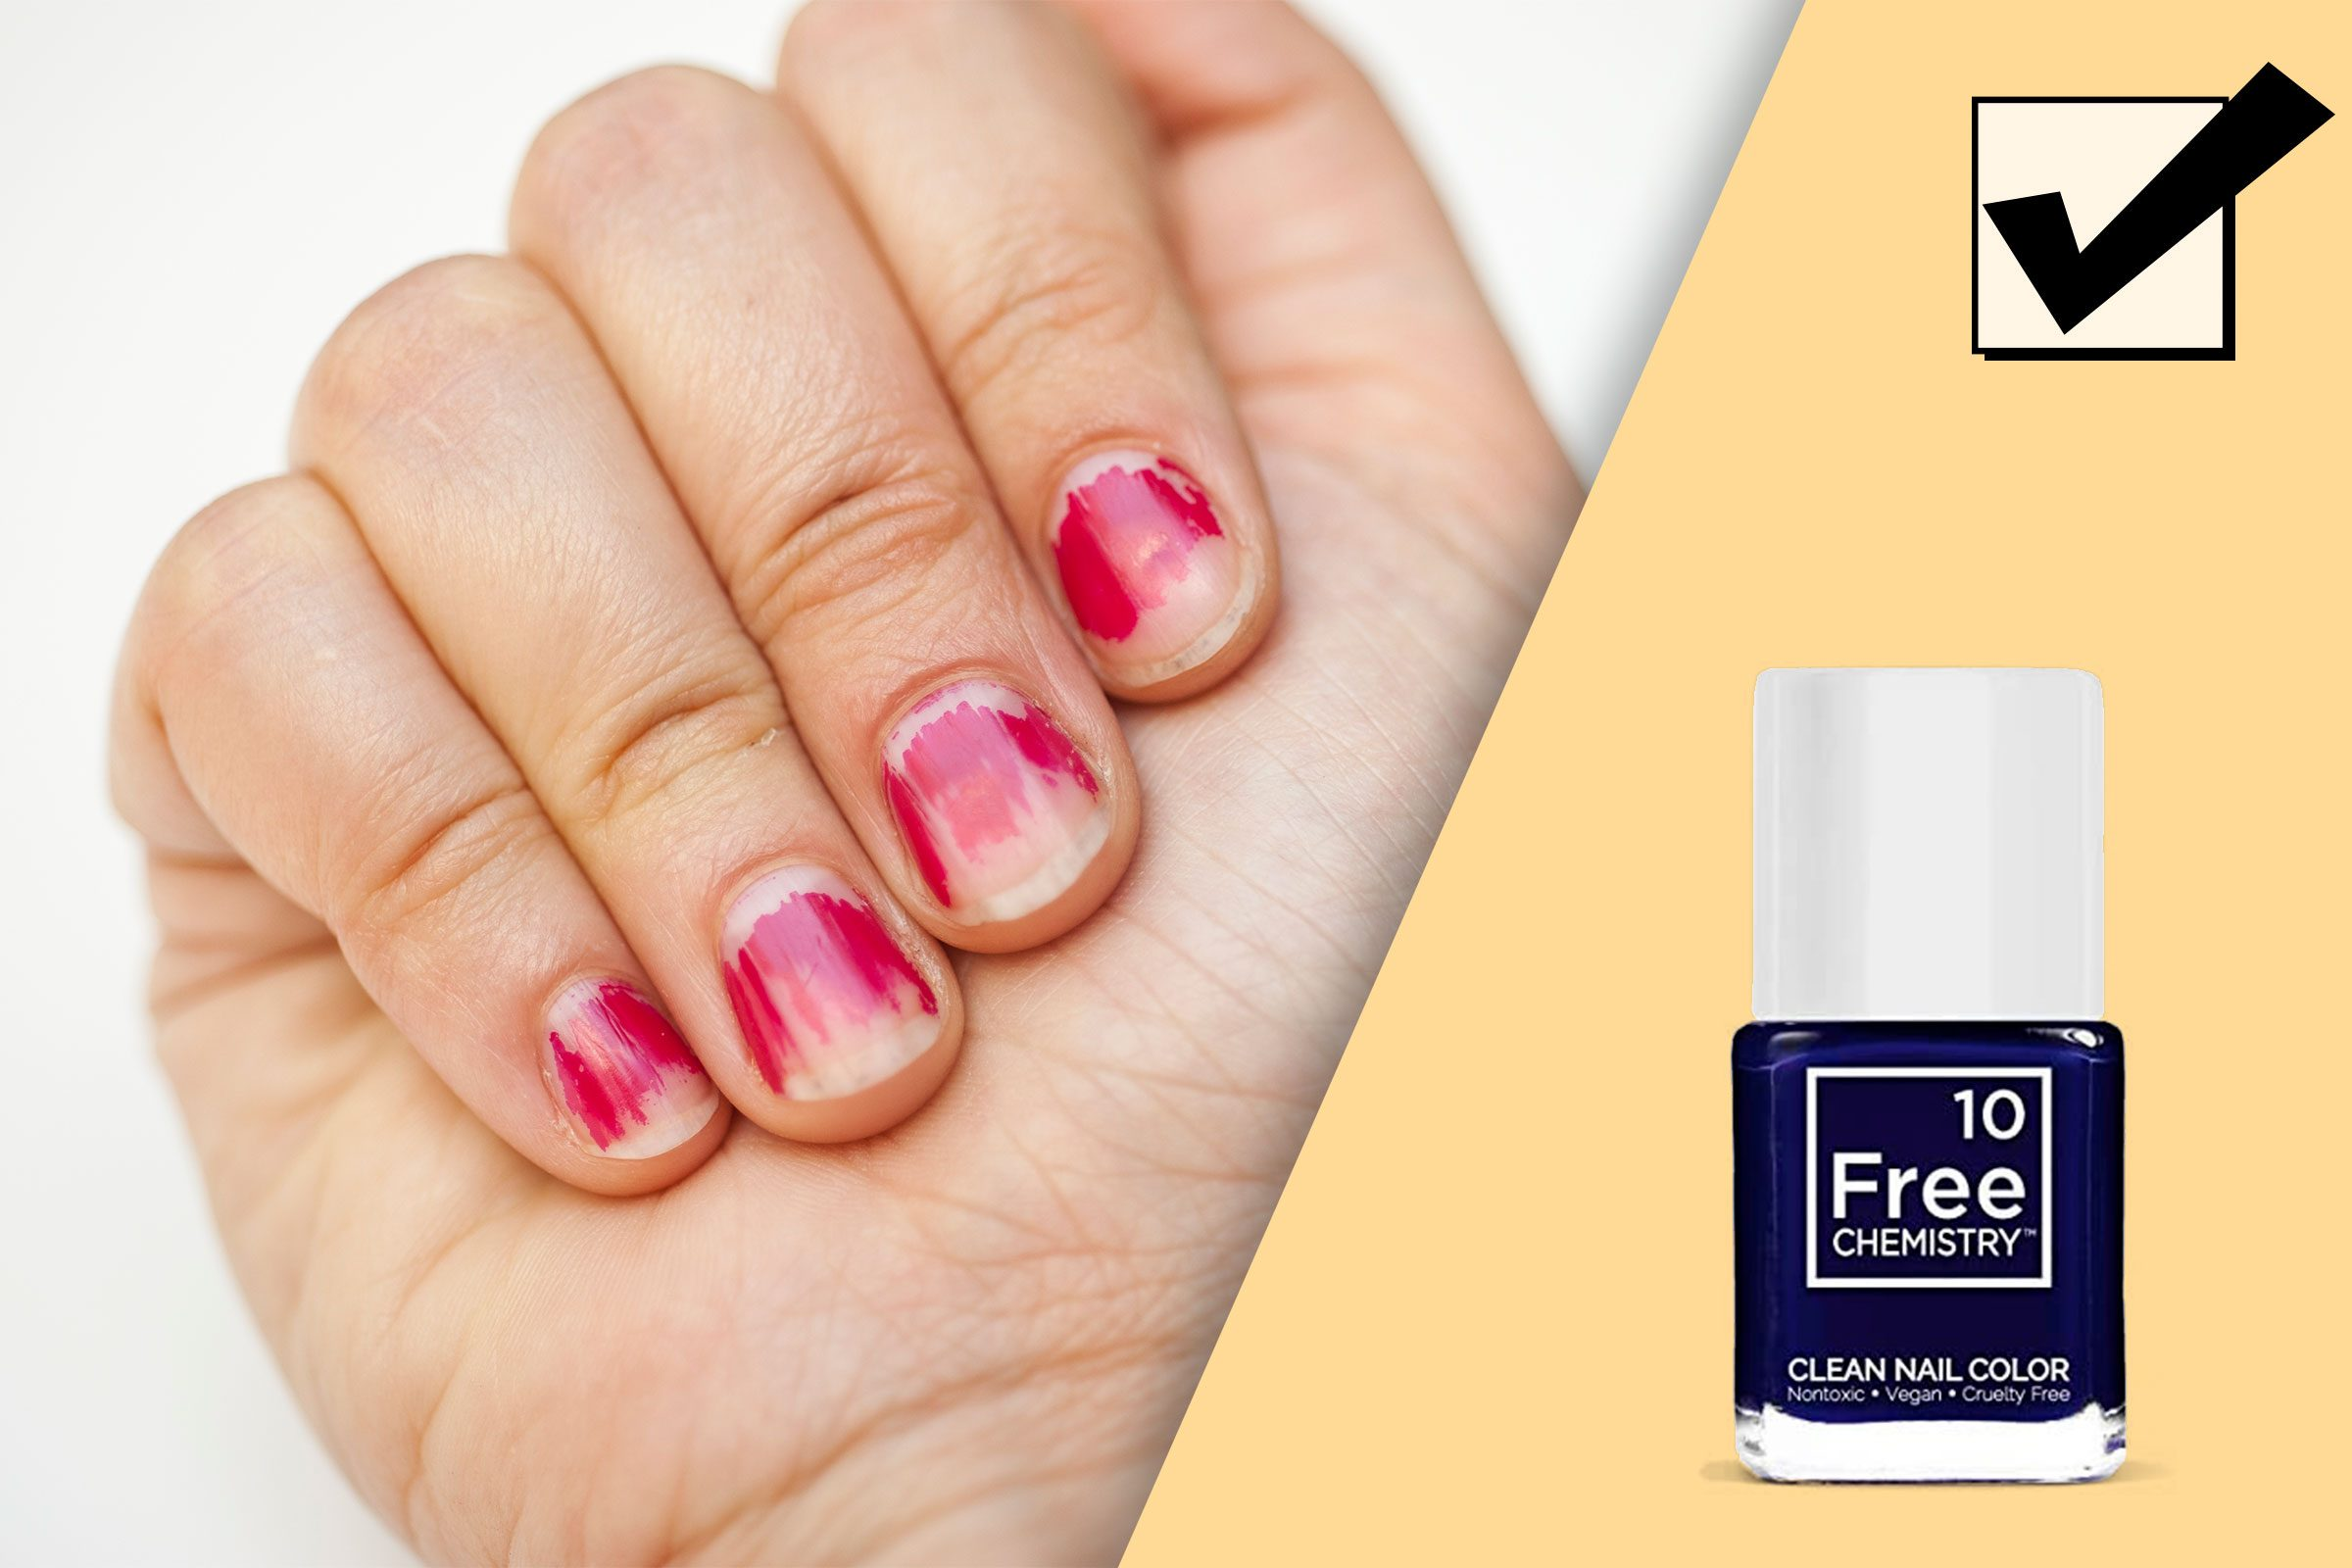 chipped nail polish; and recommended product